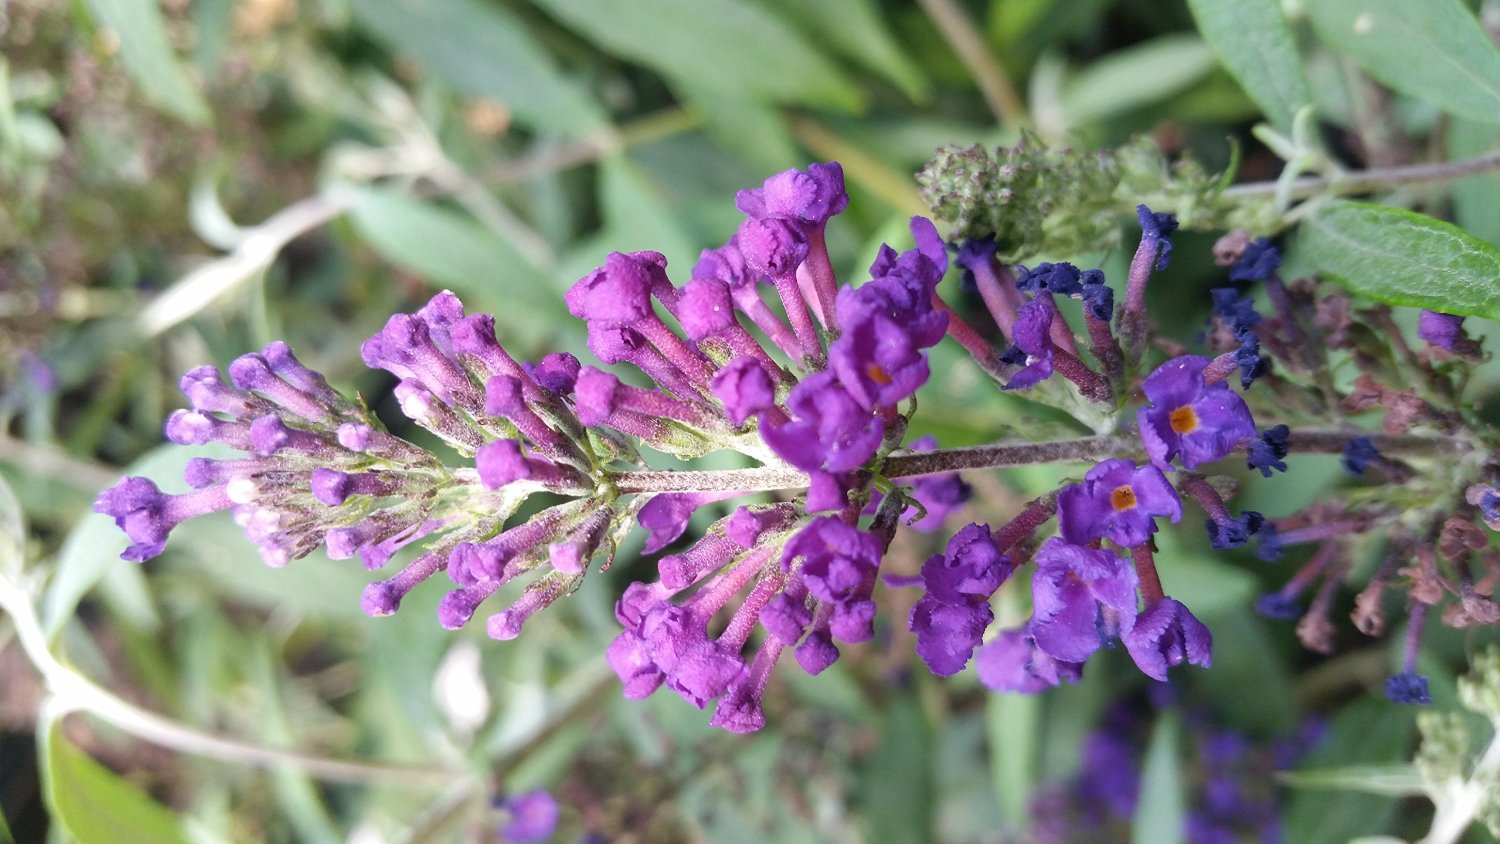 Buddleia Lo & Behold TM Blue Chip Butterfly Bush-- MINIATURE BUDDLEAS (2 ft tall), Blooms profusely and continuously, never needs deadheading.